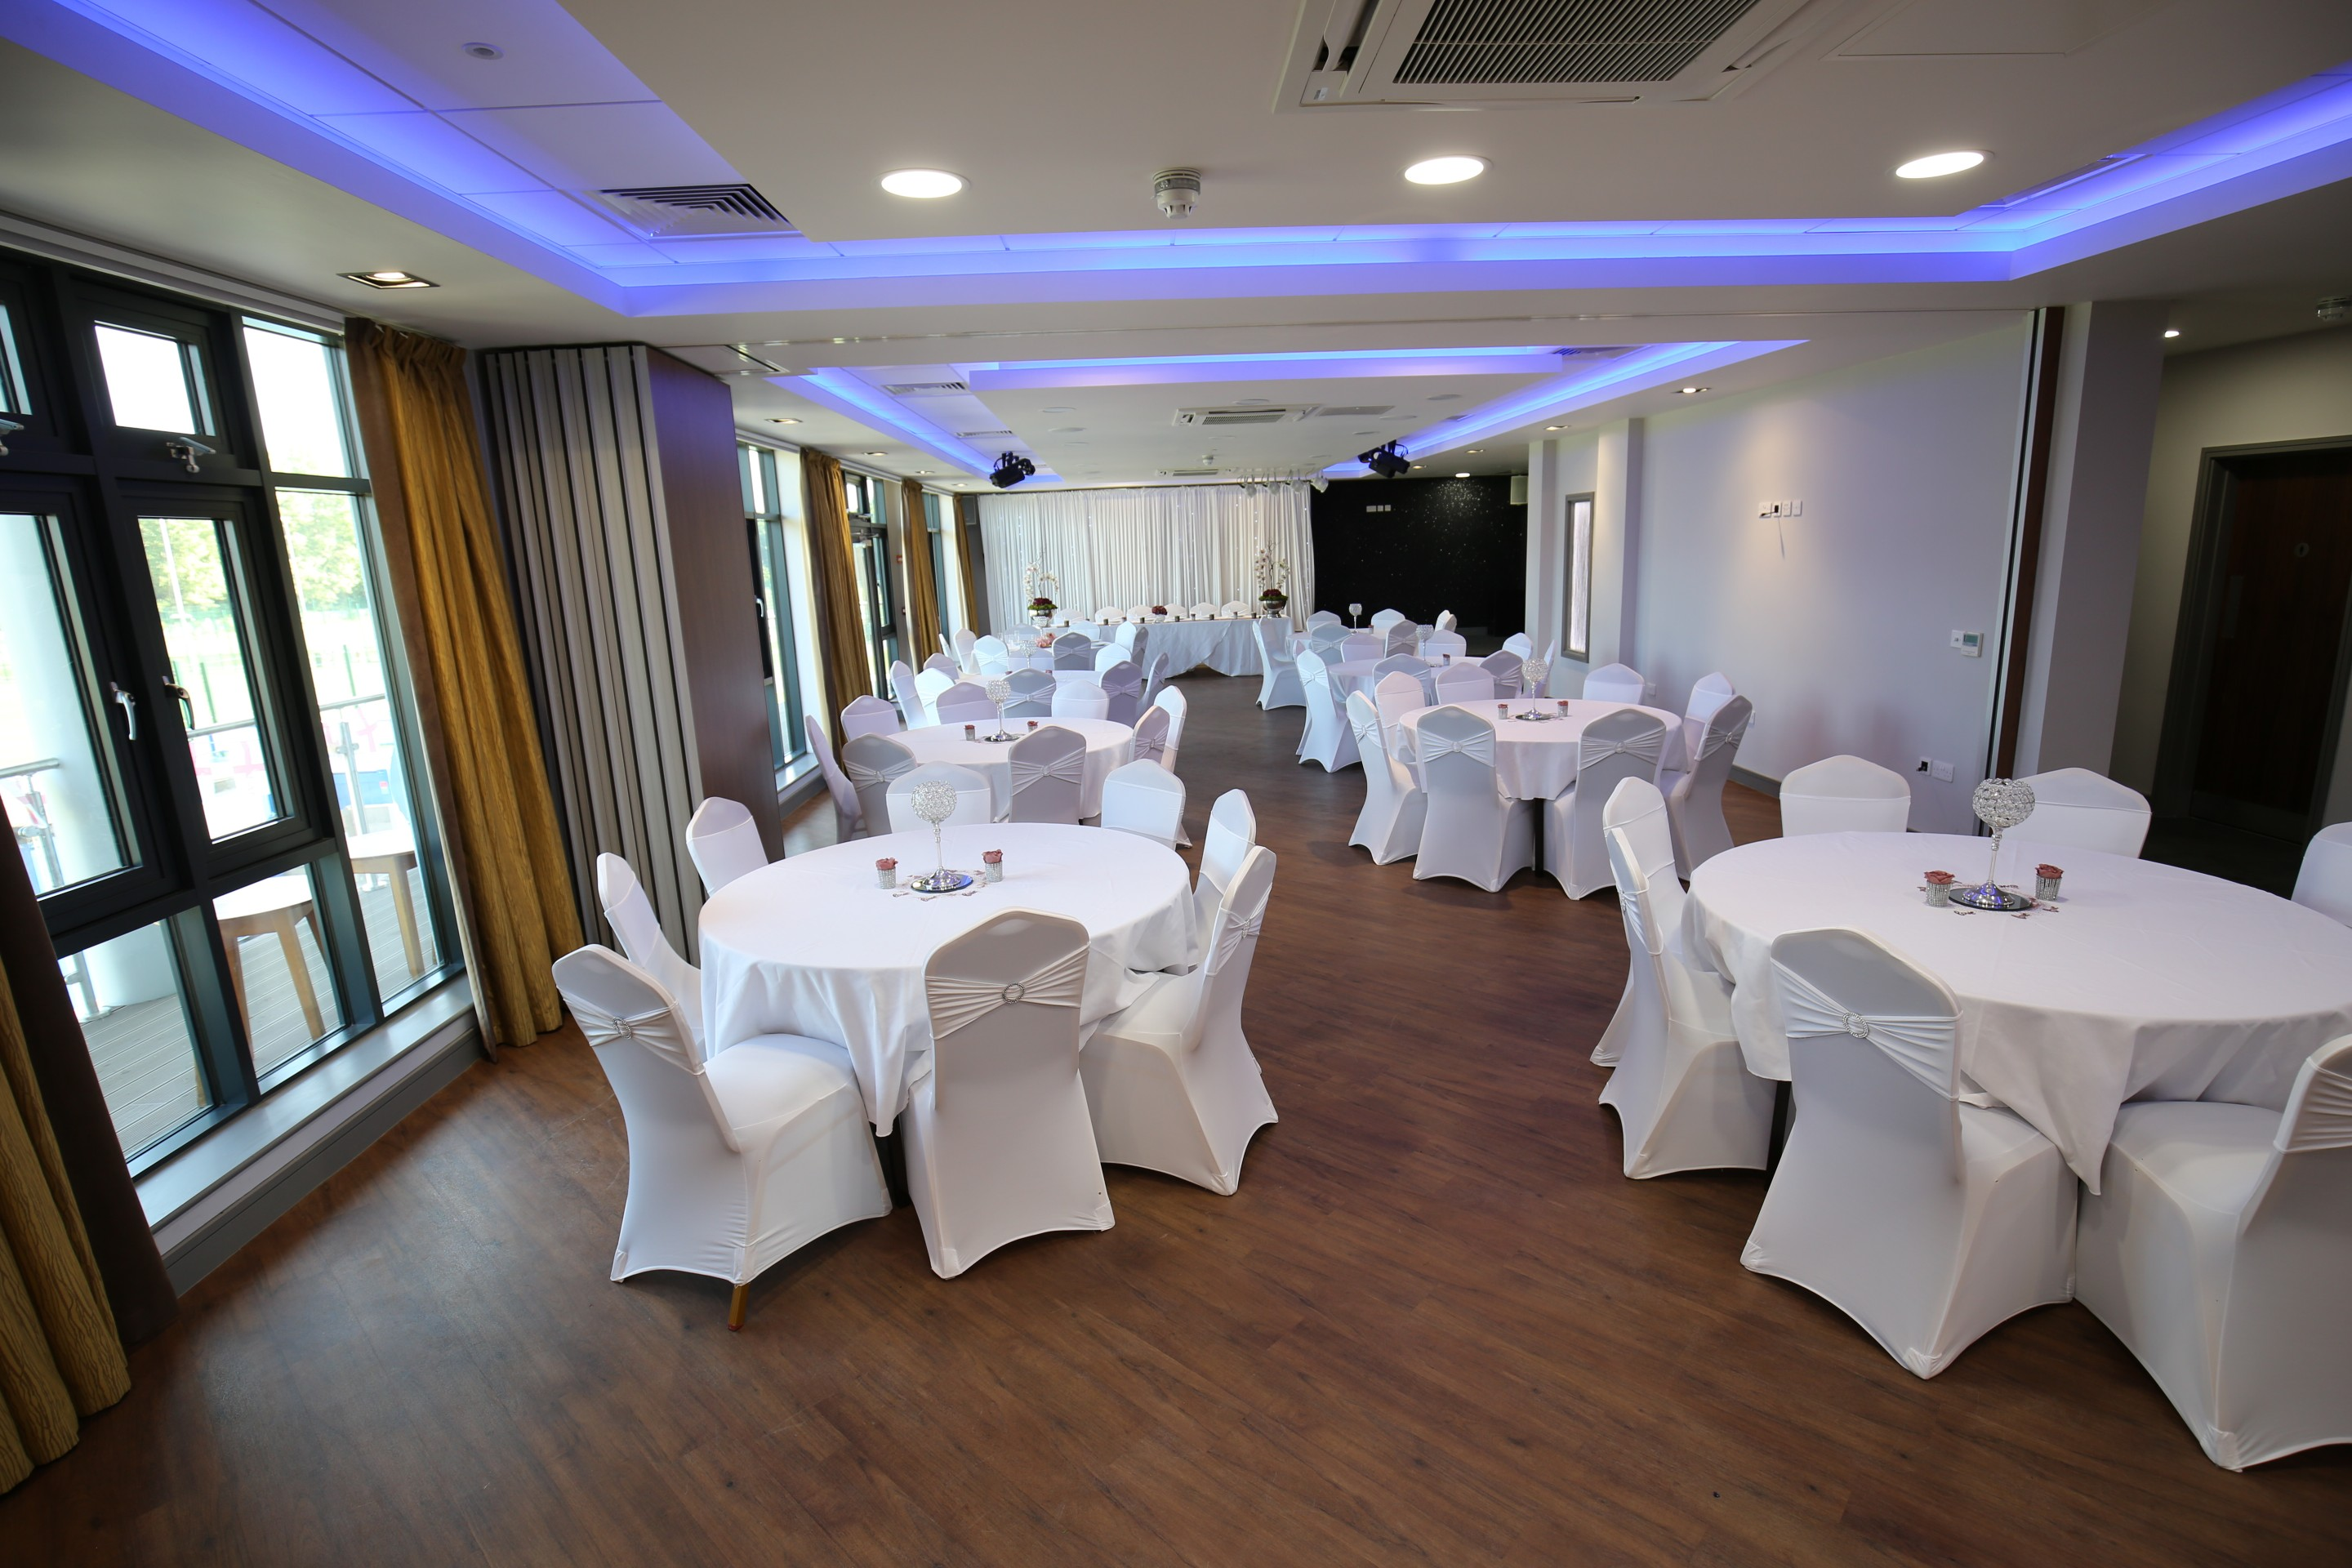 chair cover hire ellesmere port that converts to a twin bed function room wirral vauxhall motors sports club tables and chairs setup ready for wedding